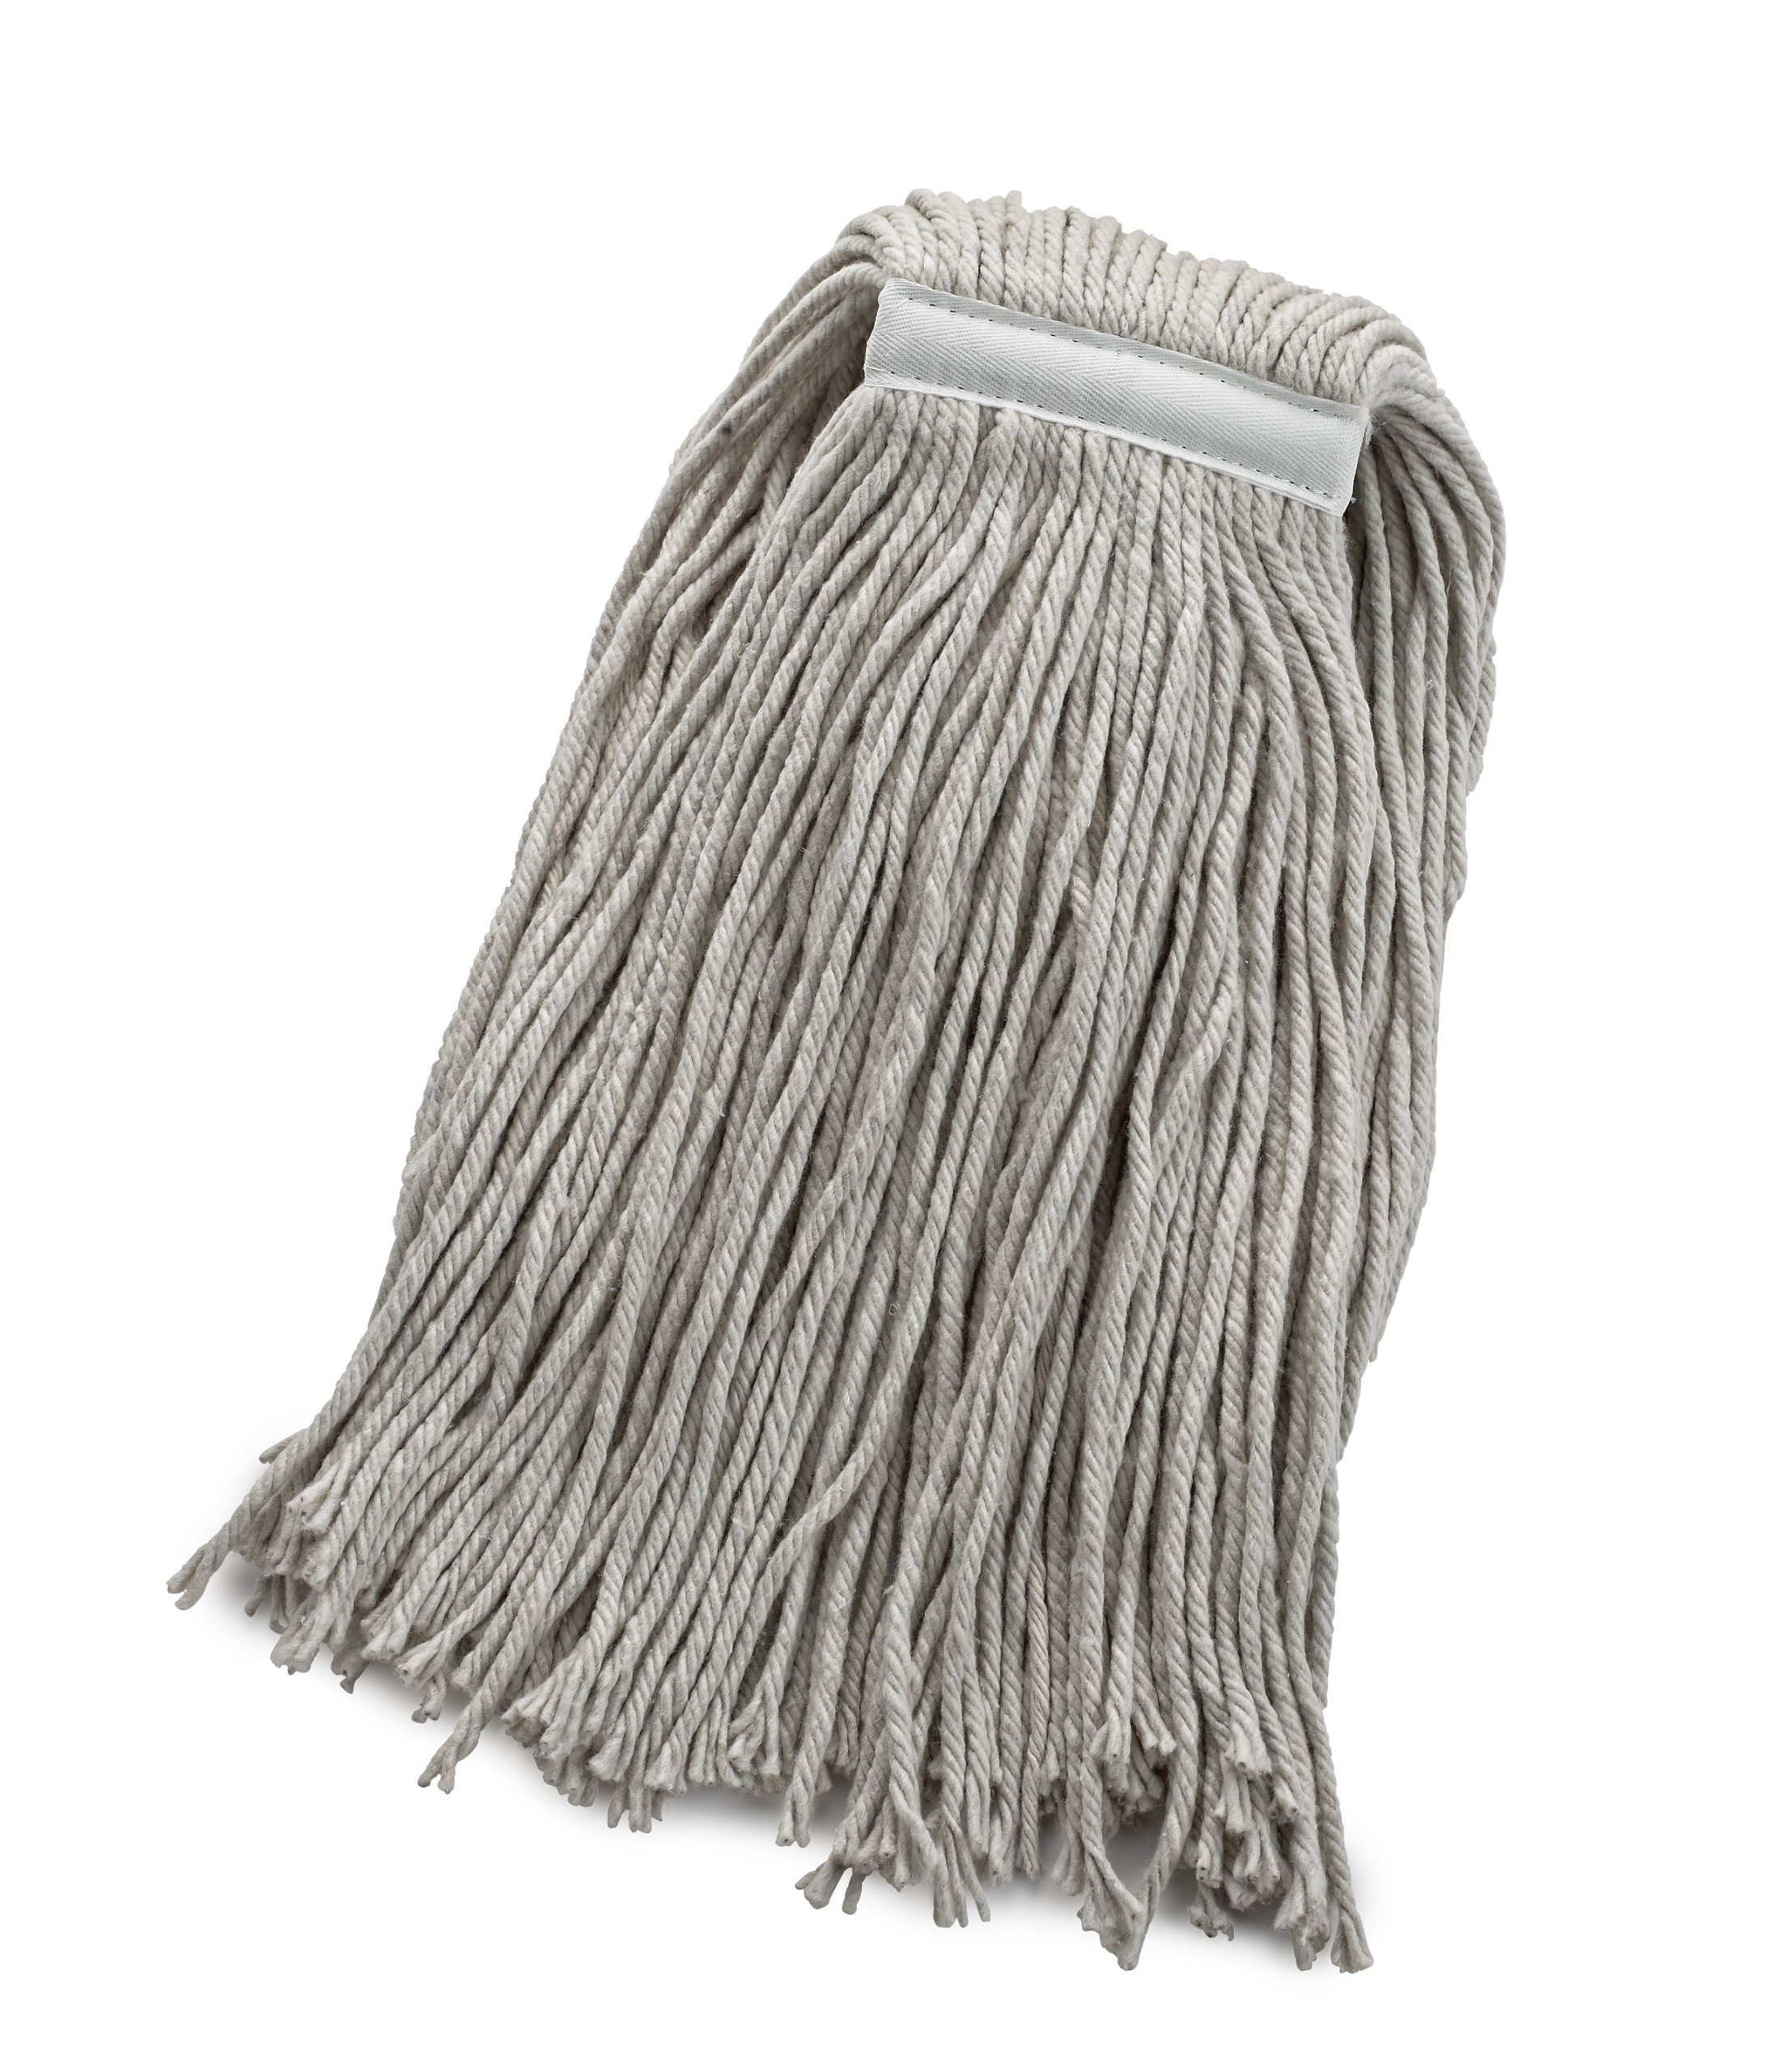 Bristles 32oz Wet Cut End Mop Head Replacement, 1 Inch Narrow Headband, 4 Ply Cotton, Full Weight, Pack of 12 (32 oz, White)